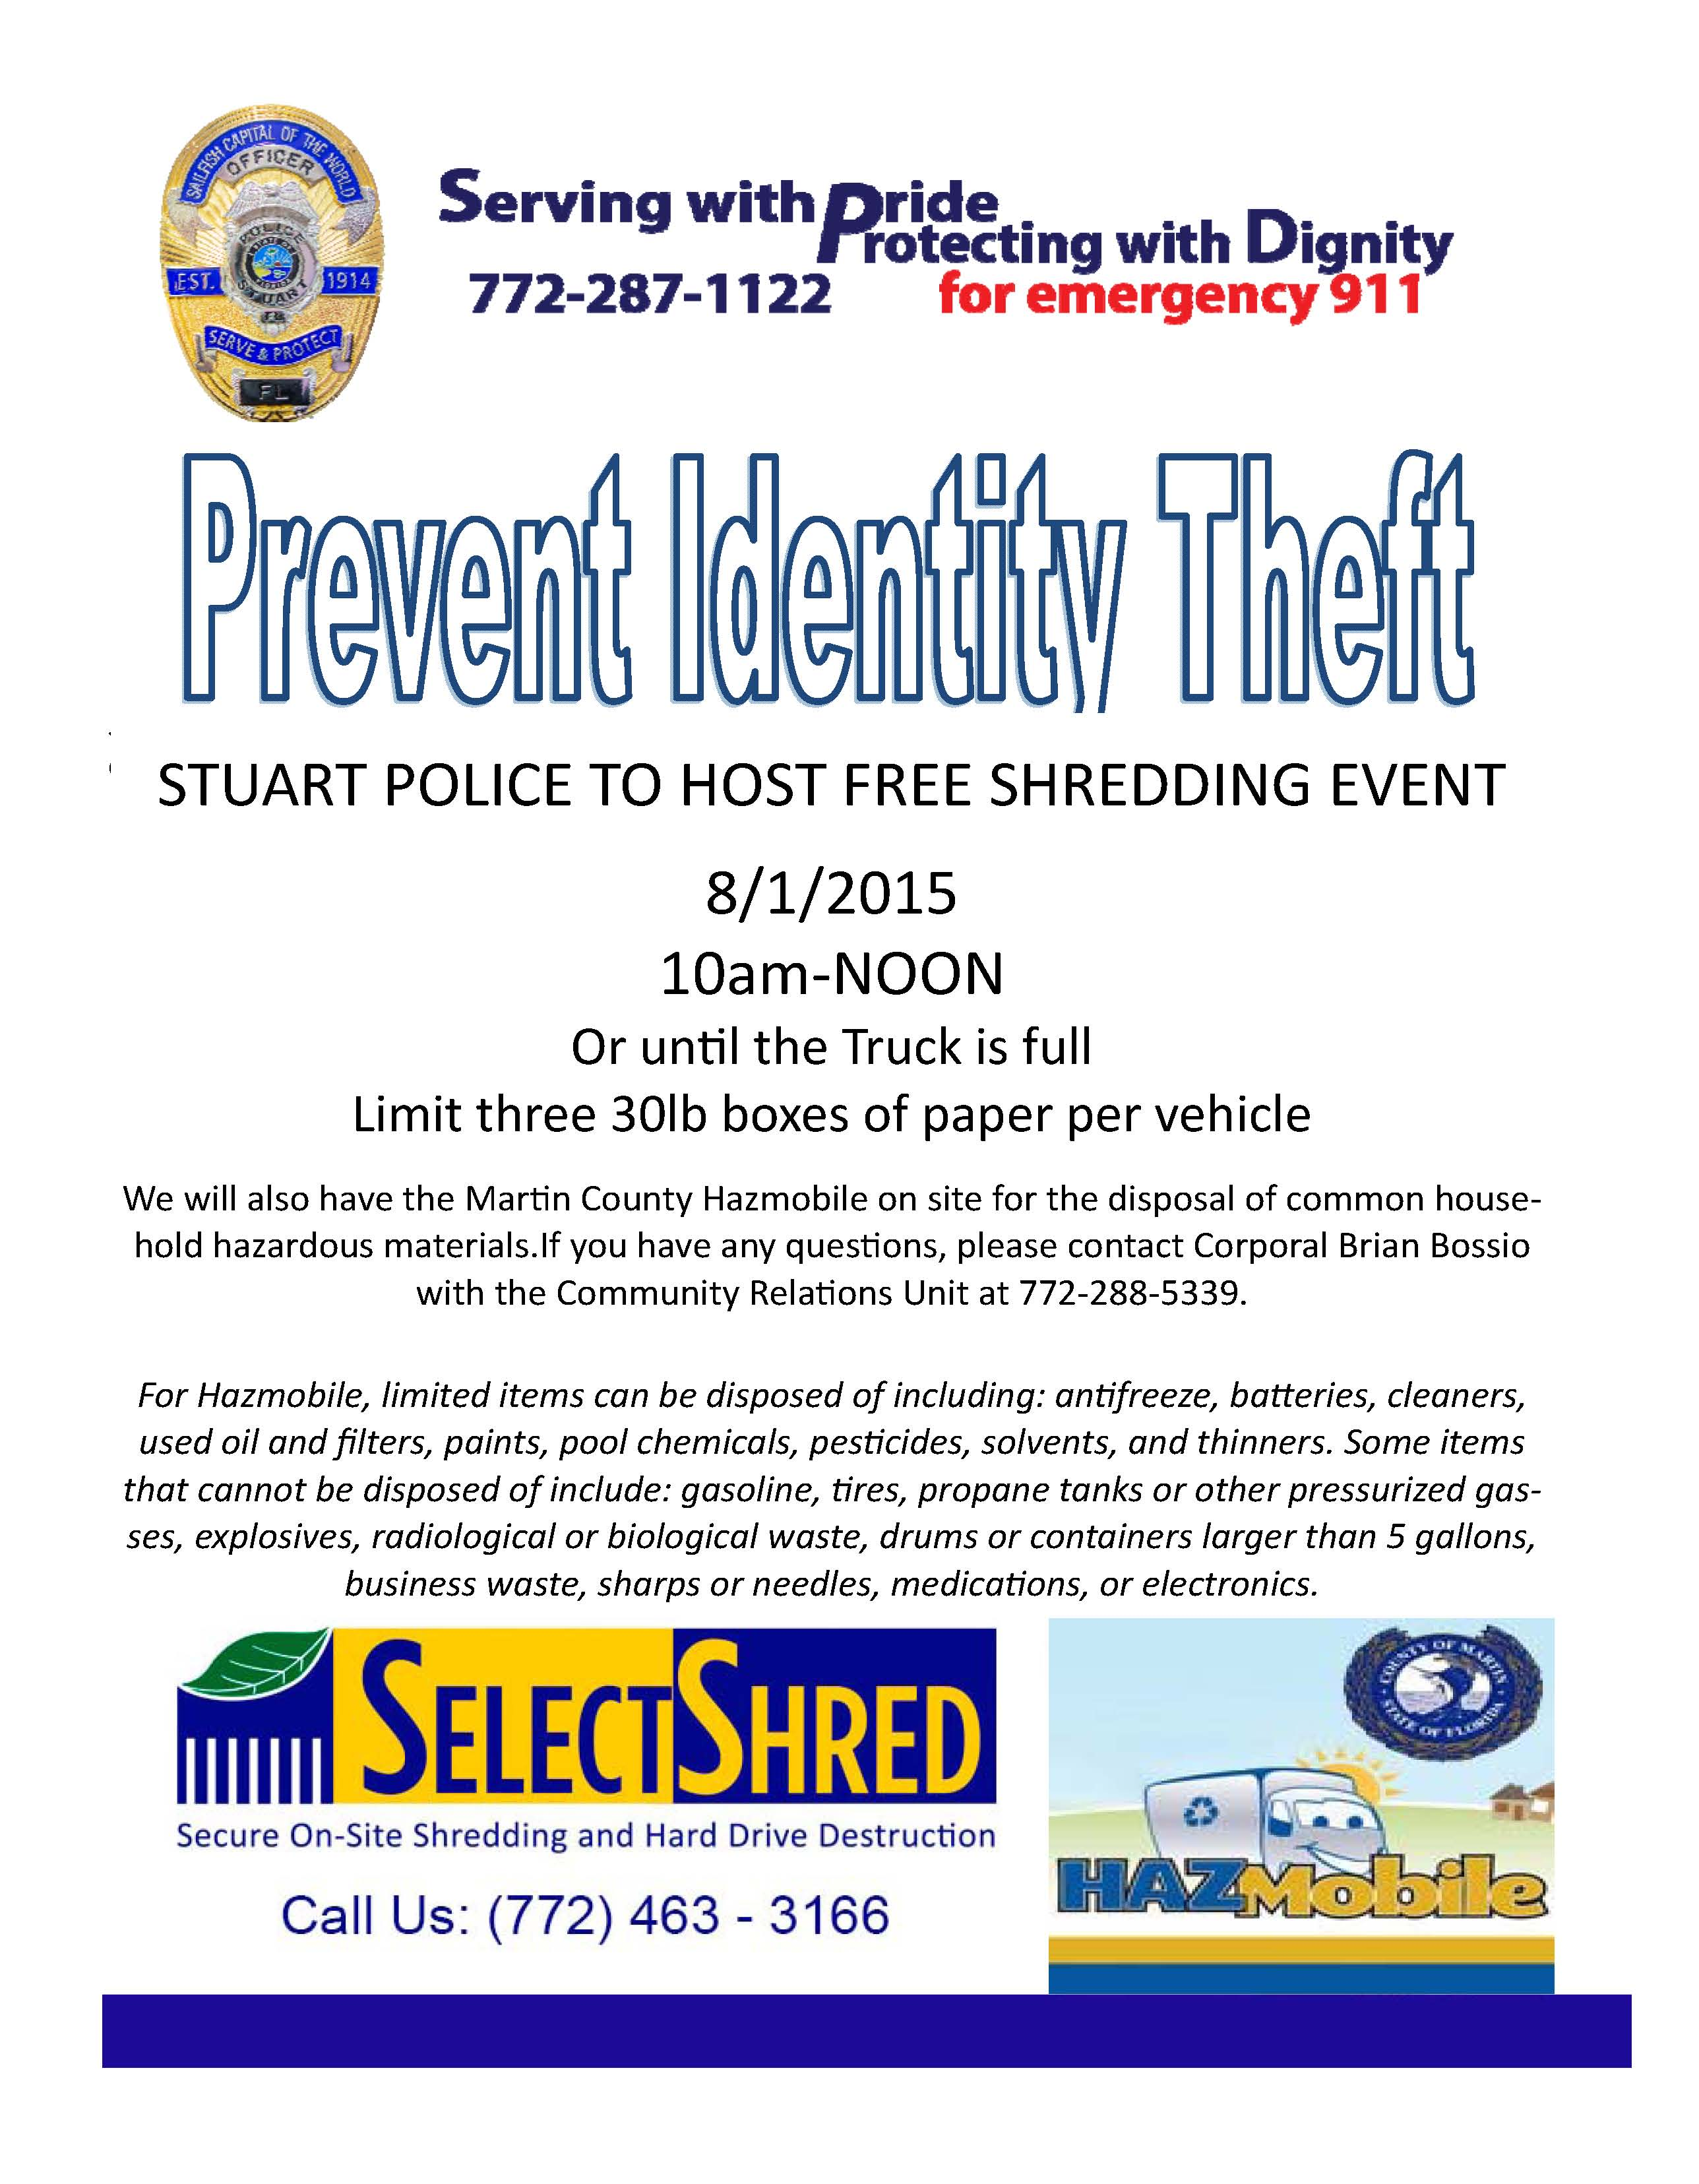 Selectshred secure document shredding and hard drive destruction august 1 2015 free shred event stuart florida 1betcityfo Image collections